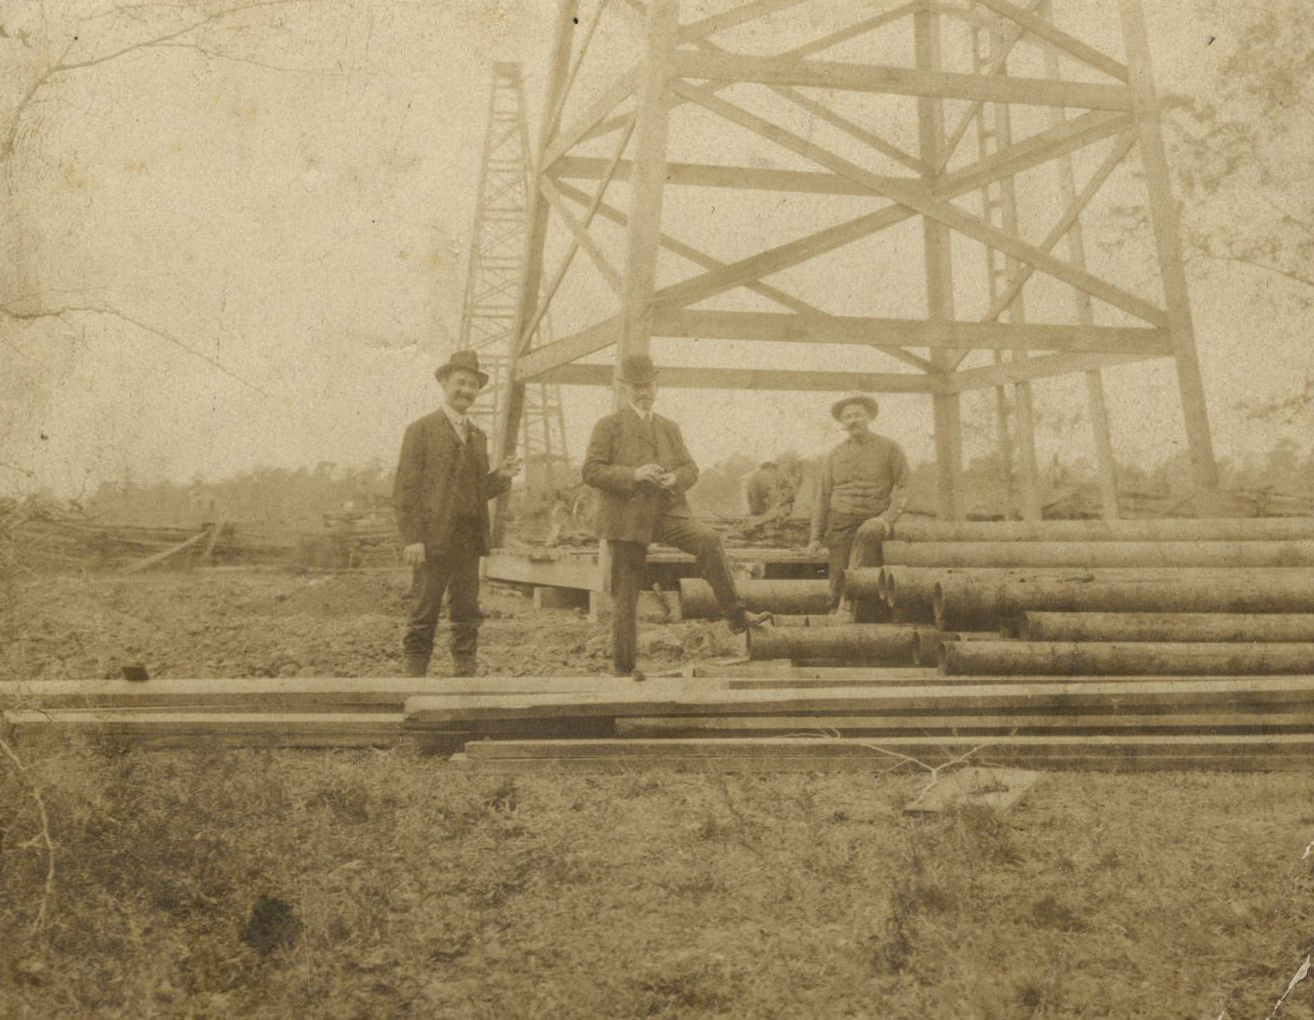 As a wildcatter or independent oilman, Henry (on the left) brought in some of the first wells in Humble in 1904 & 1905